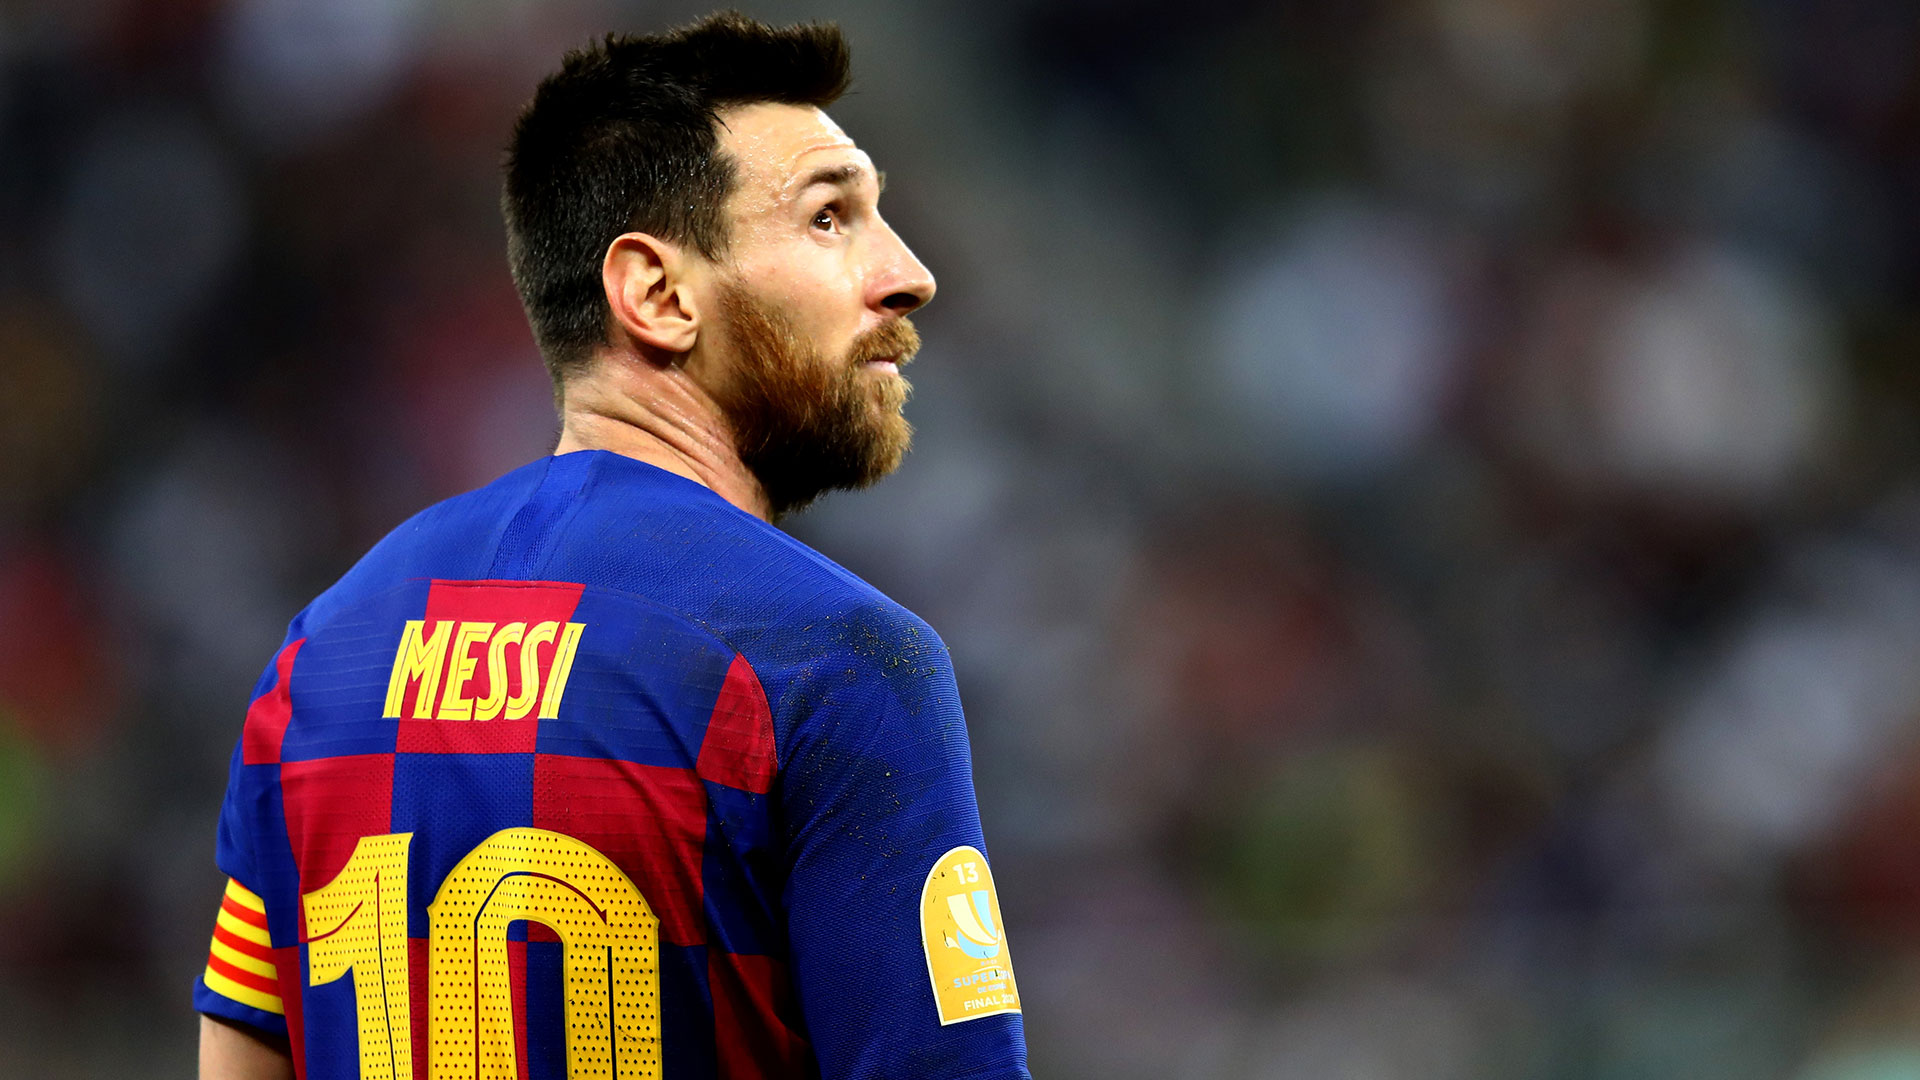 Messi is the best player in history – Xavi